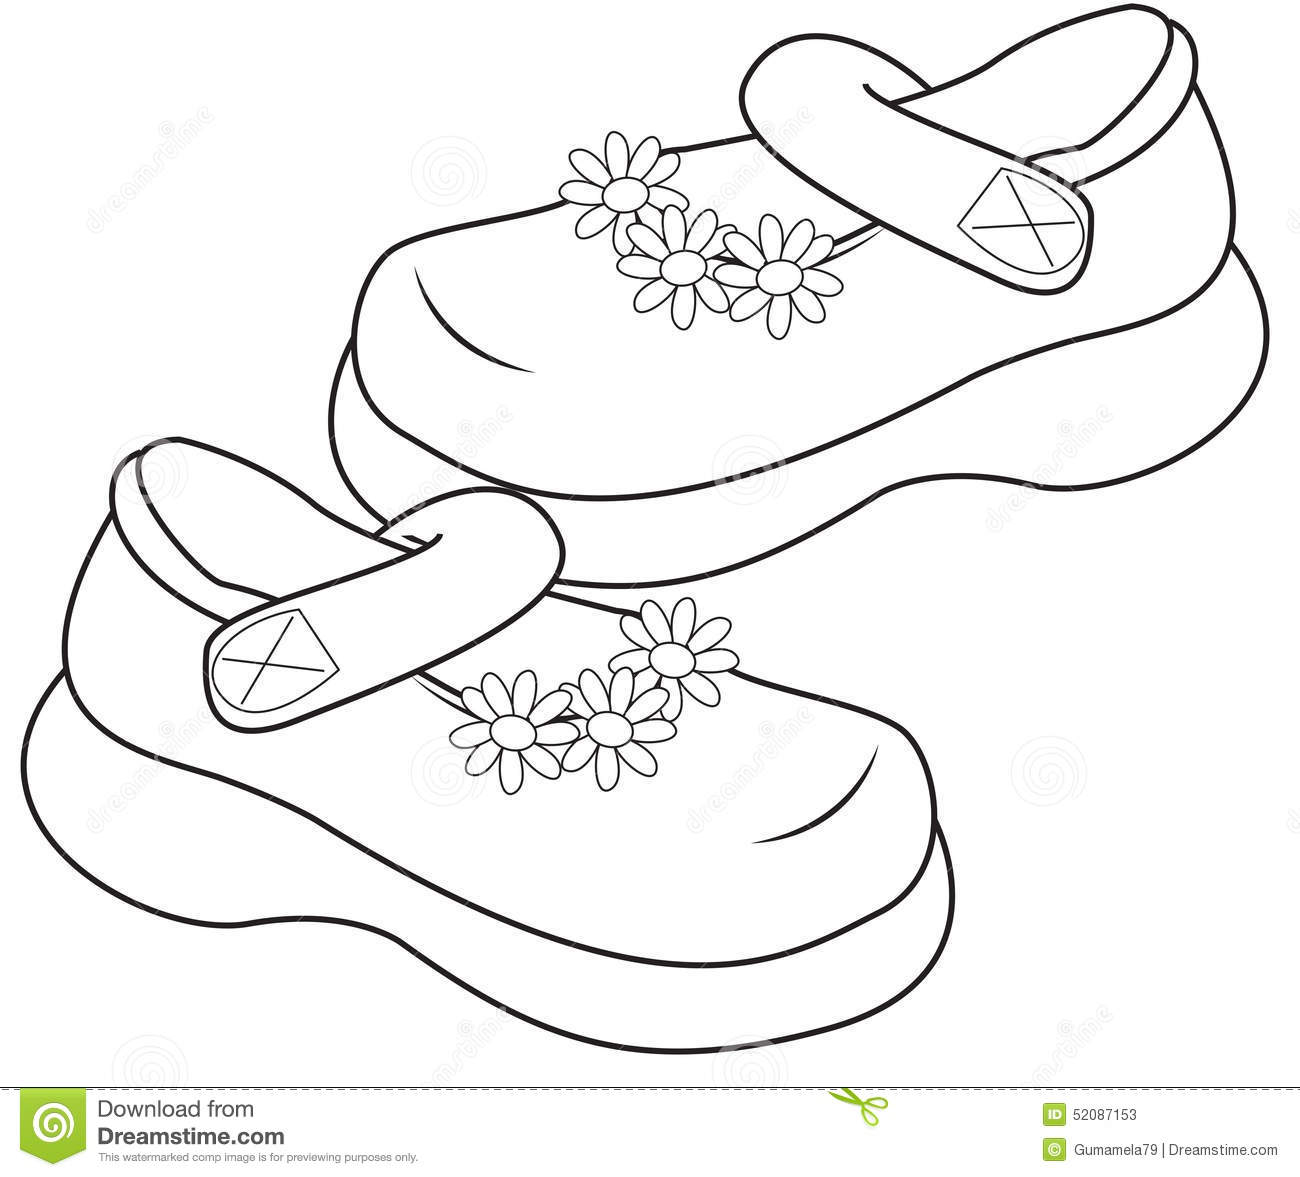 Stock Illustration Shoes Girls Coloring Page Useful As Book Kids Image52087153 together with Baby Tiger Coloring Pages For Kids 83681 as well 6 Stroke Engine 16731410 furthermore Royalty Free Stock Photography Nautical Star Image7663207 in addition . on engine animation